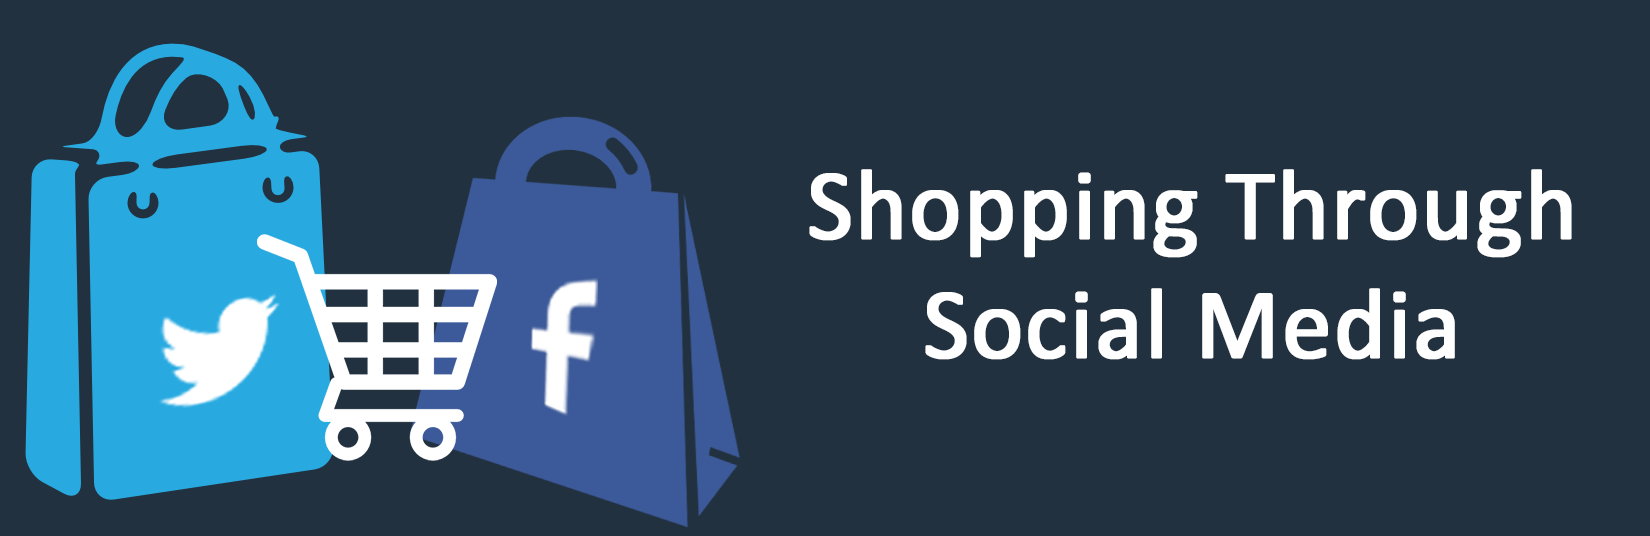 Shopping through Social Media